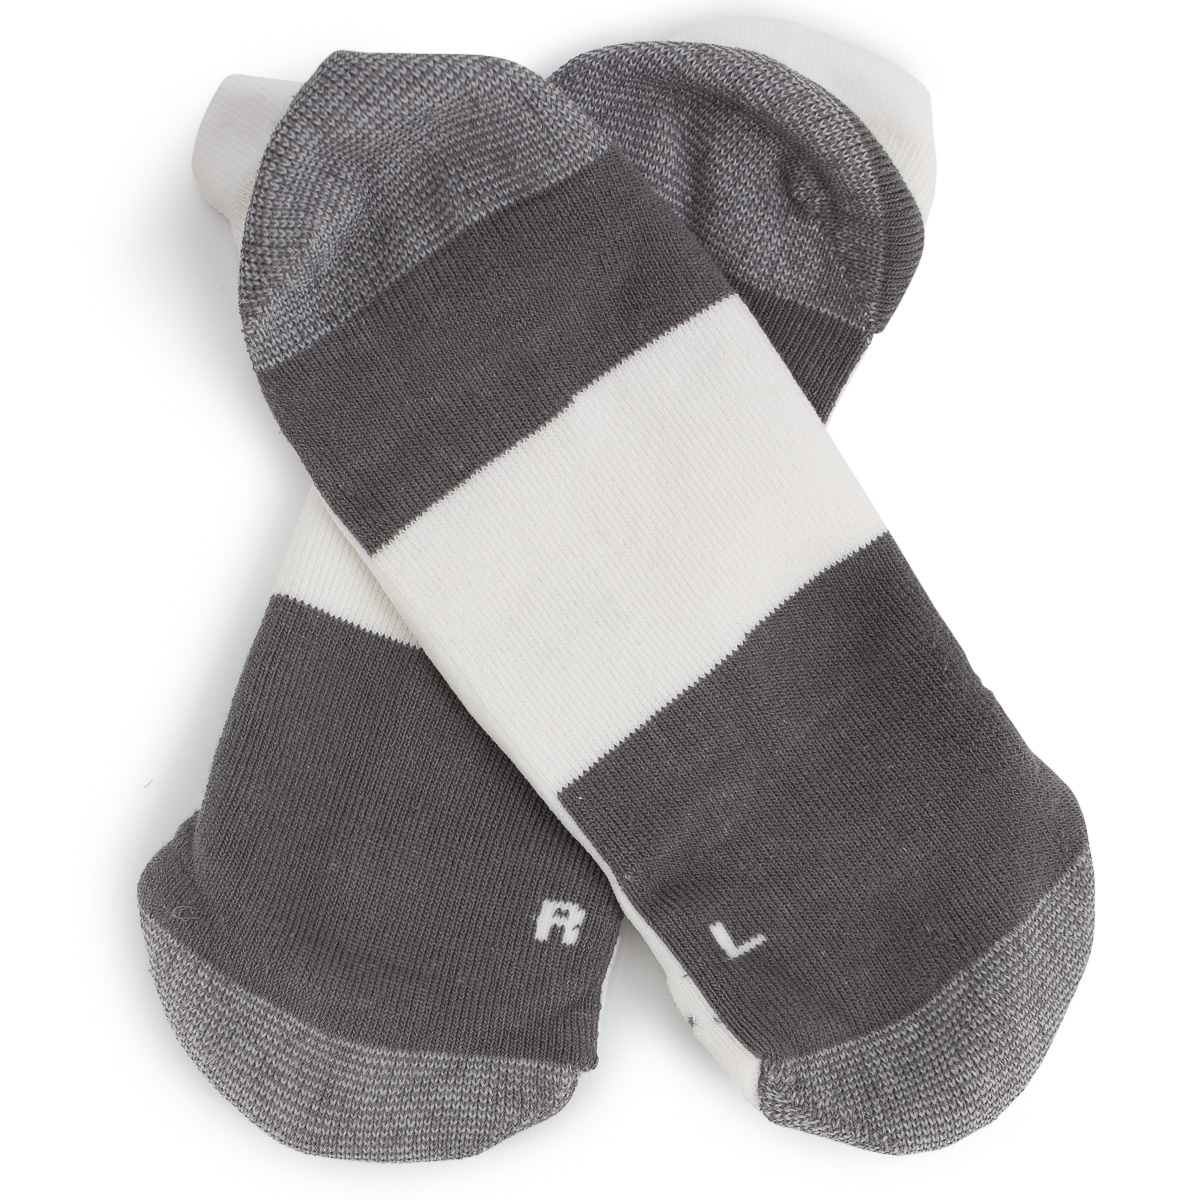 thumbnail 13 - 2-Pairs-Copper-Fit-Men-Walking-Ankle-Socks-Moisture-Wicking-Cushion-Compression